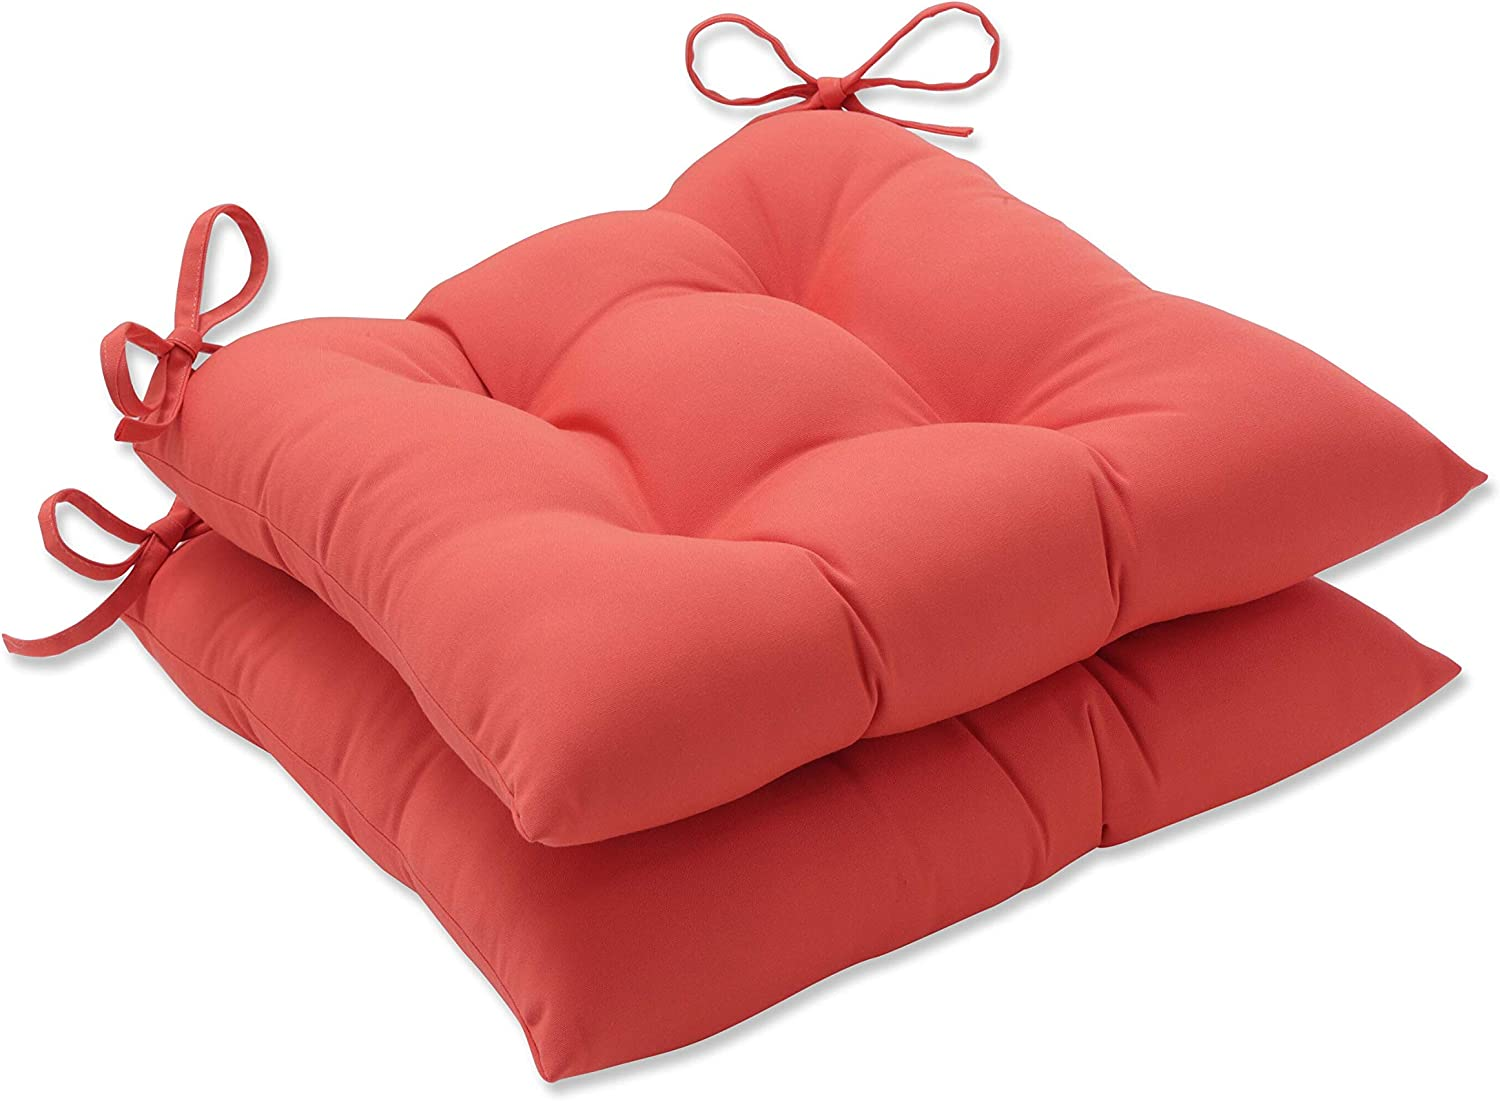 Pillow Perfect Outdoor Indoor Canvas Melon Cushion Set o Seat Selling rankings A surprise price is realized